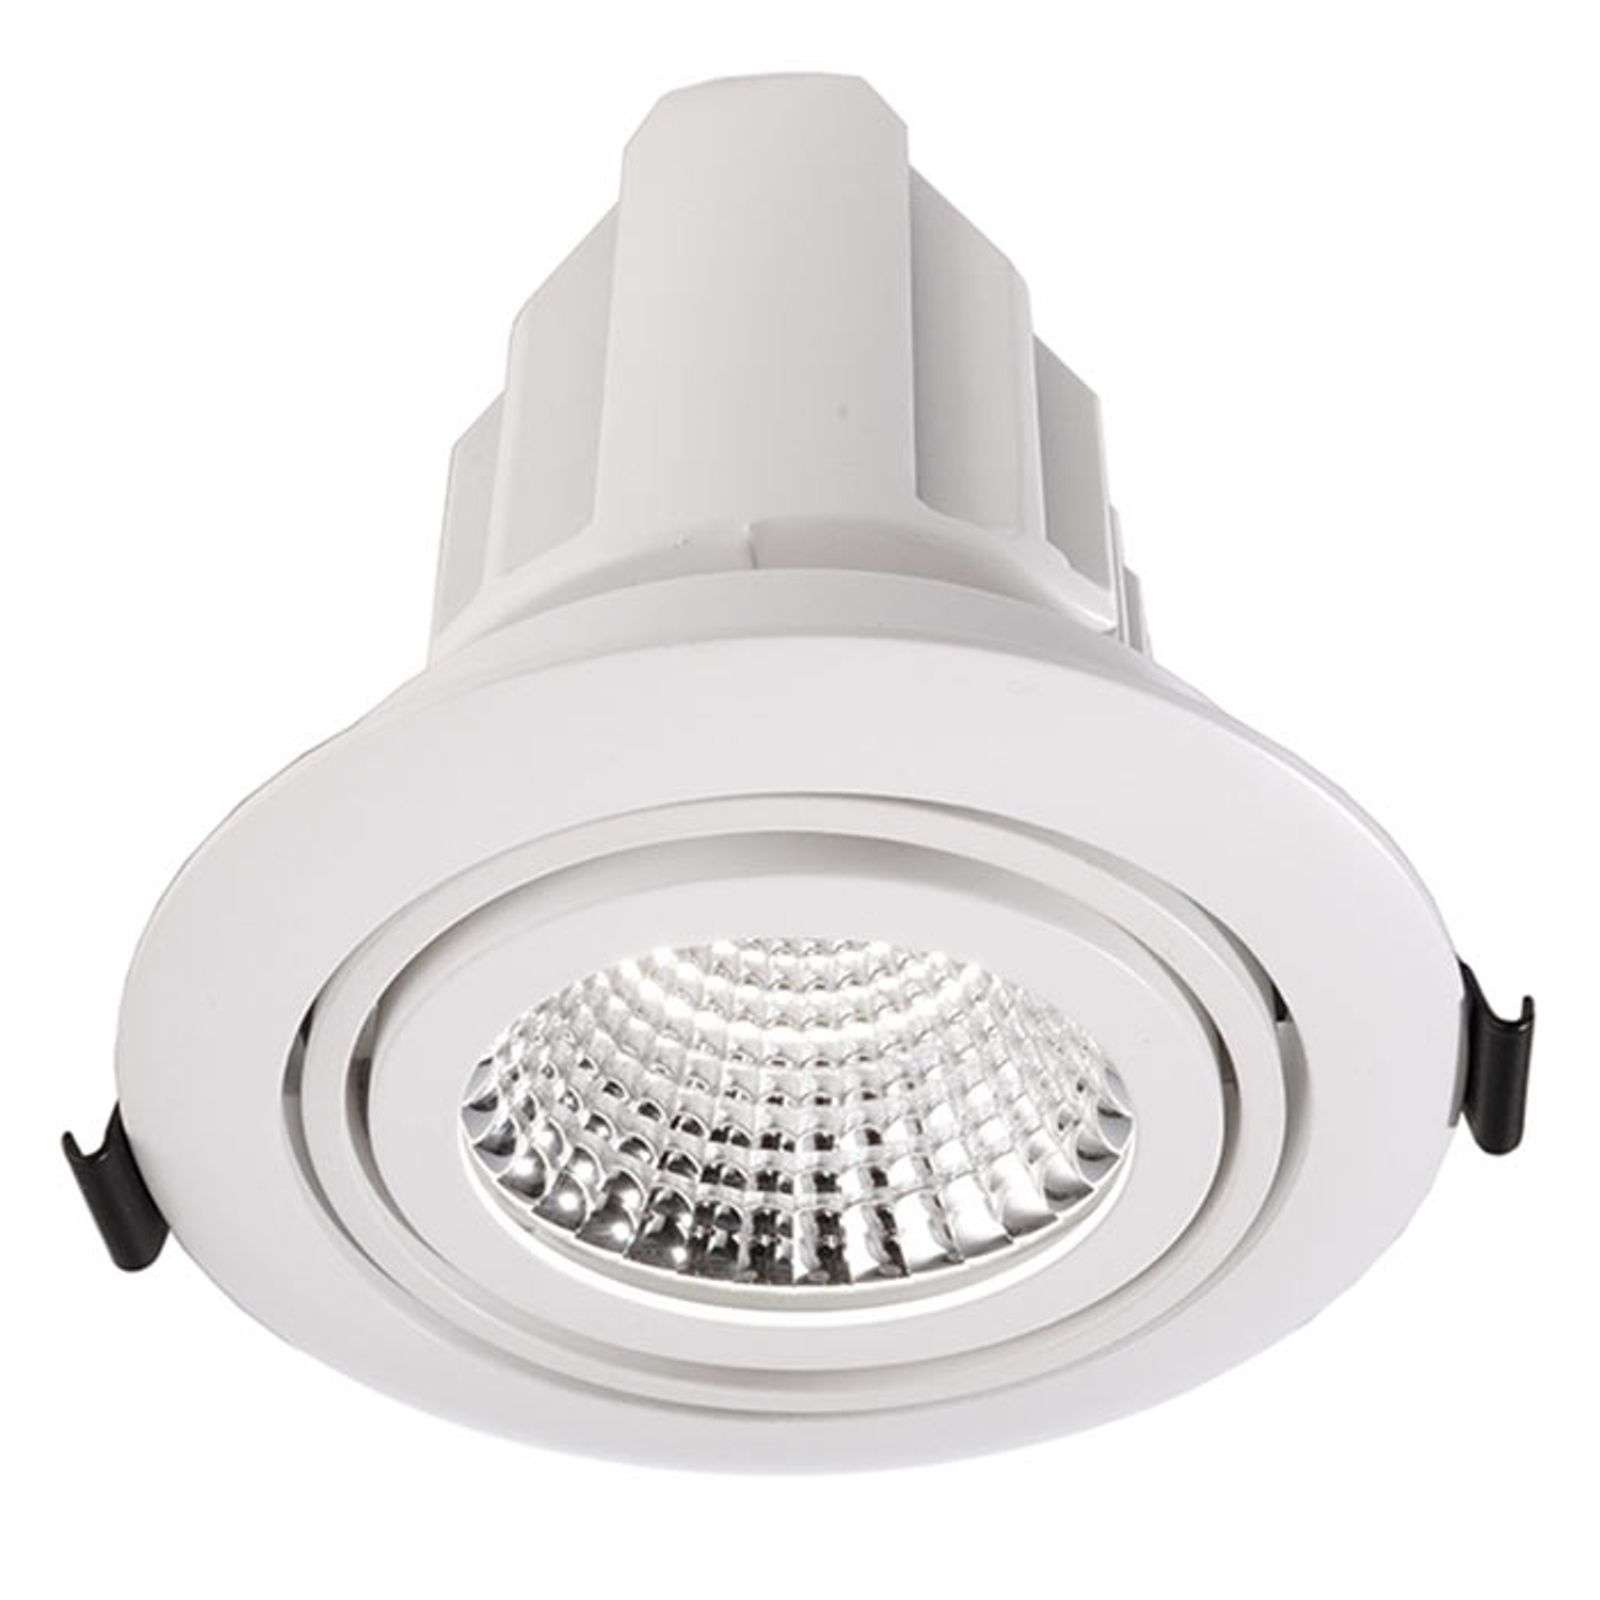 Spot encastrable LED rond Modular, 4 000 K